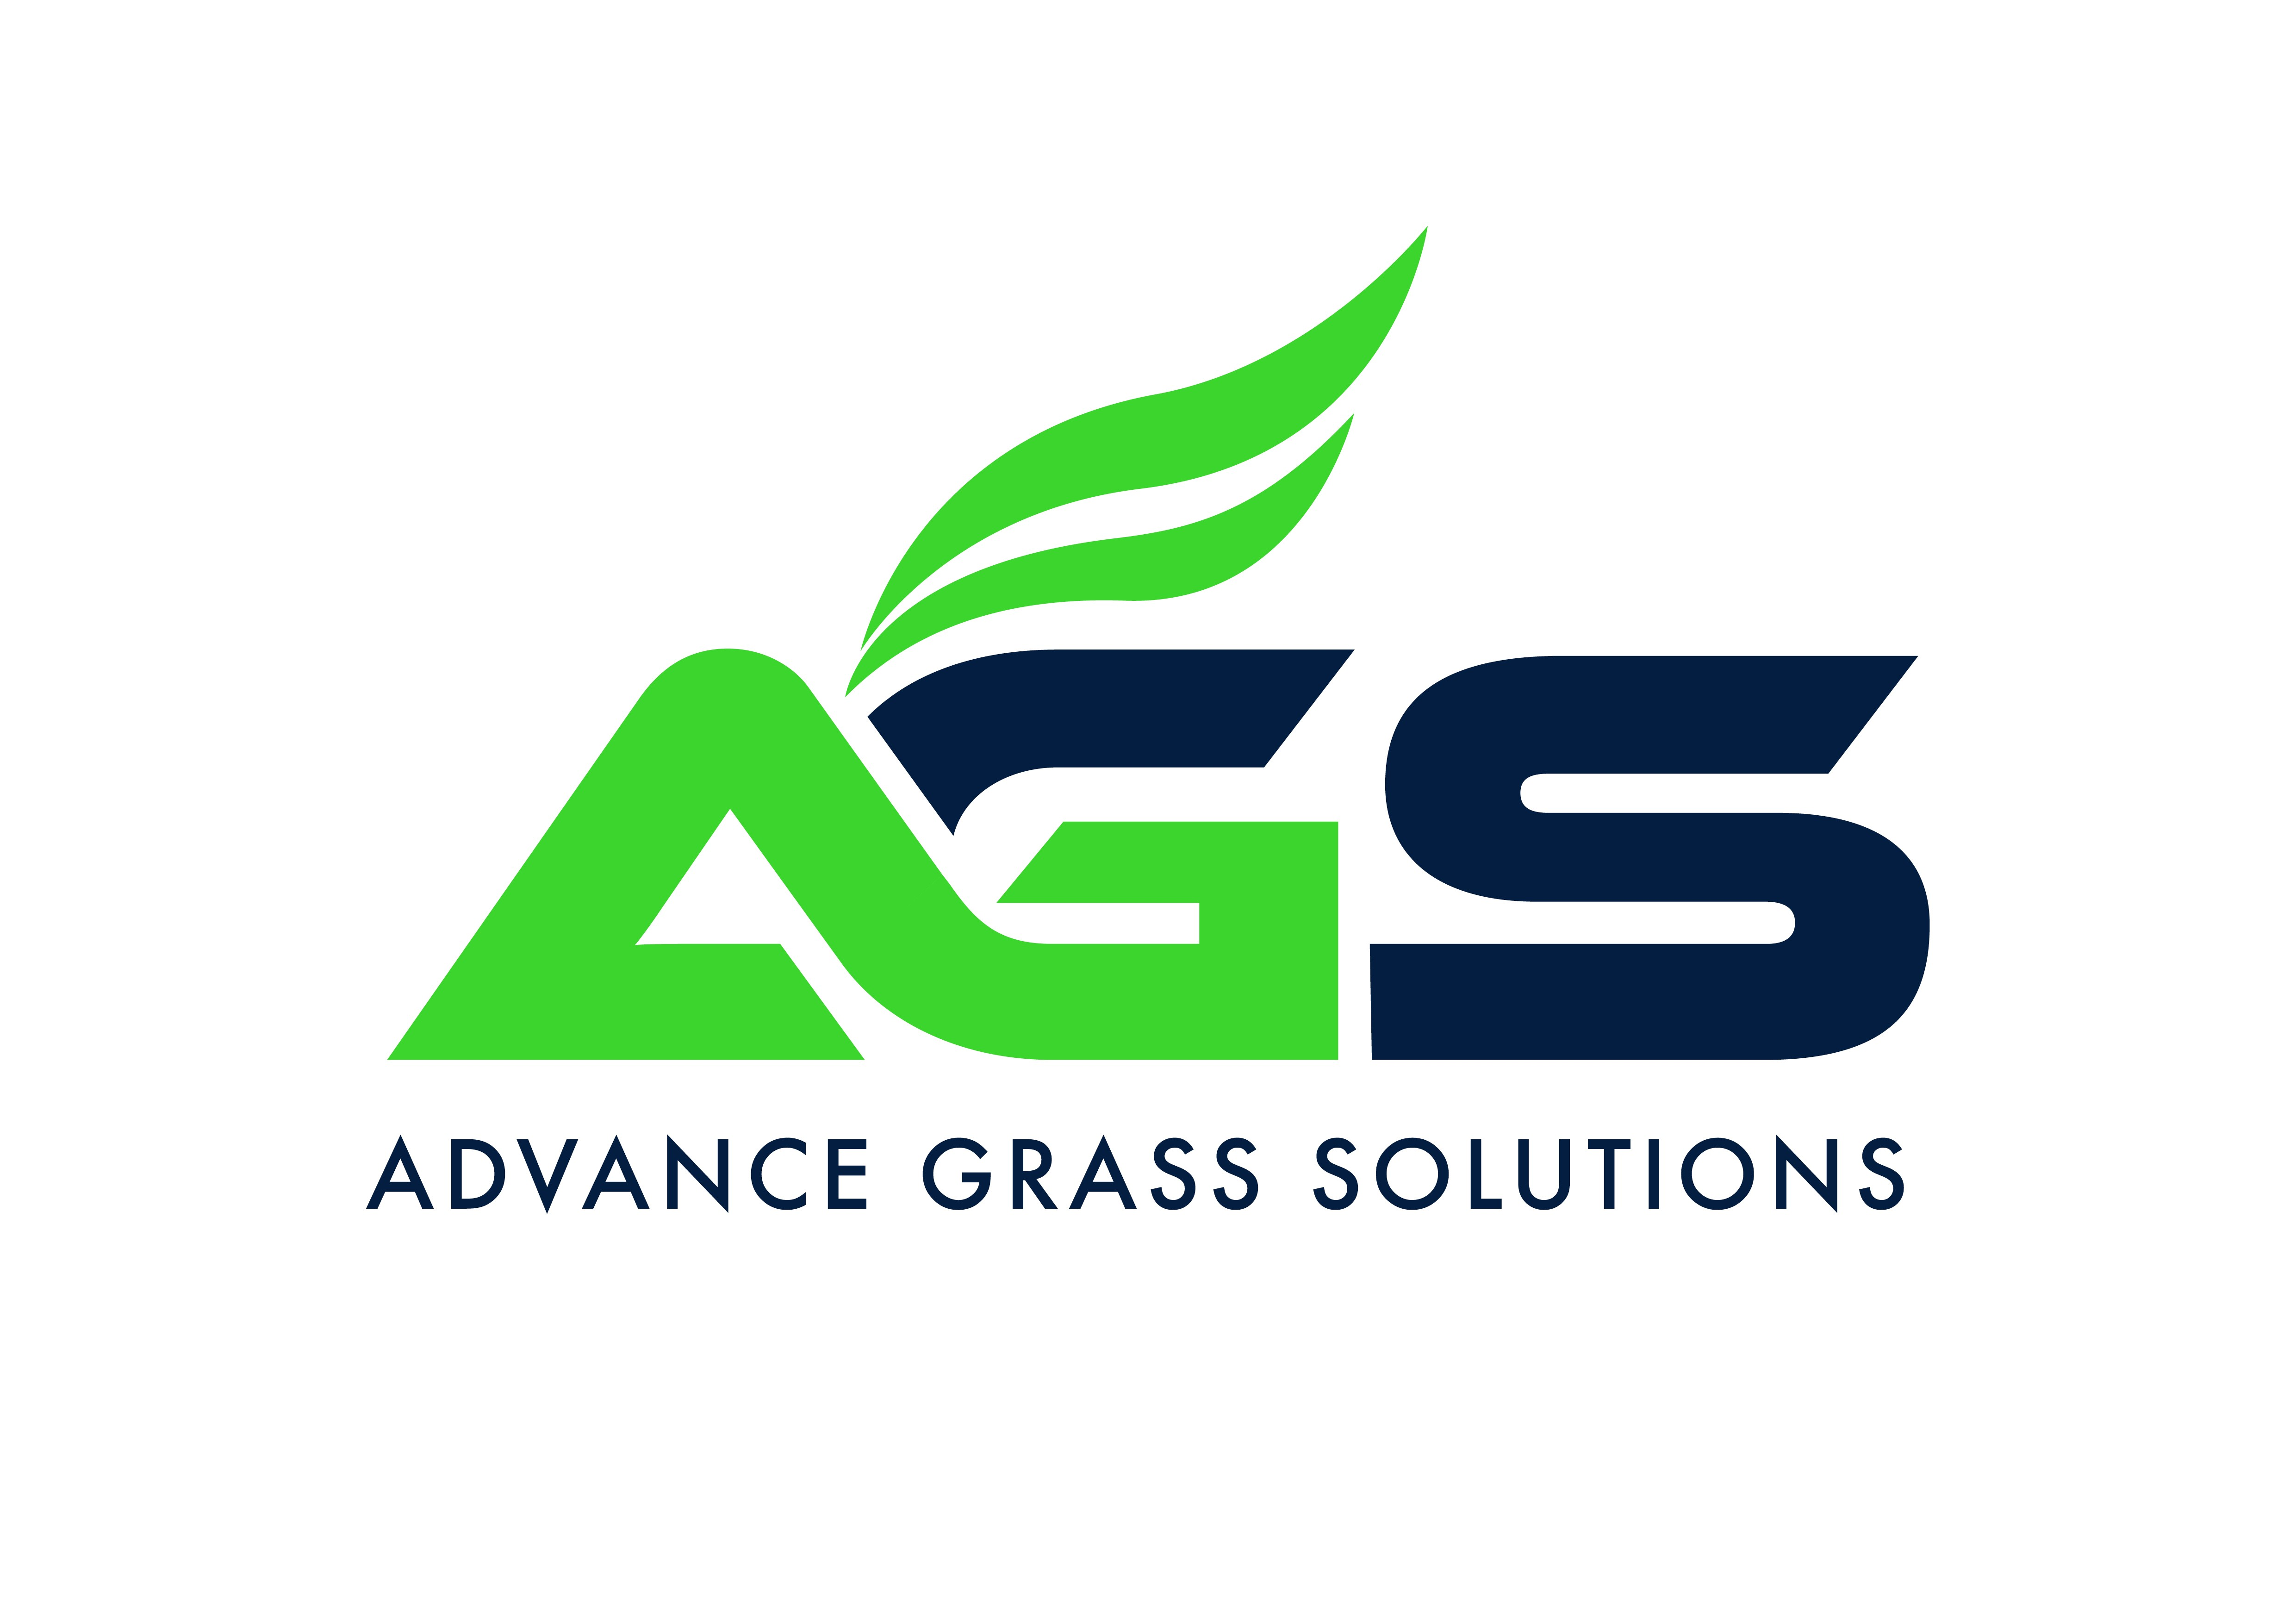 Advance Grass Solutions Ltd